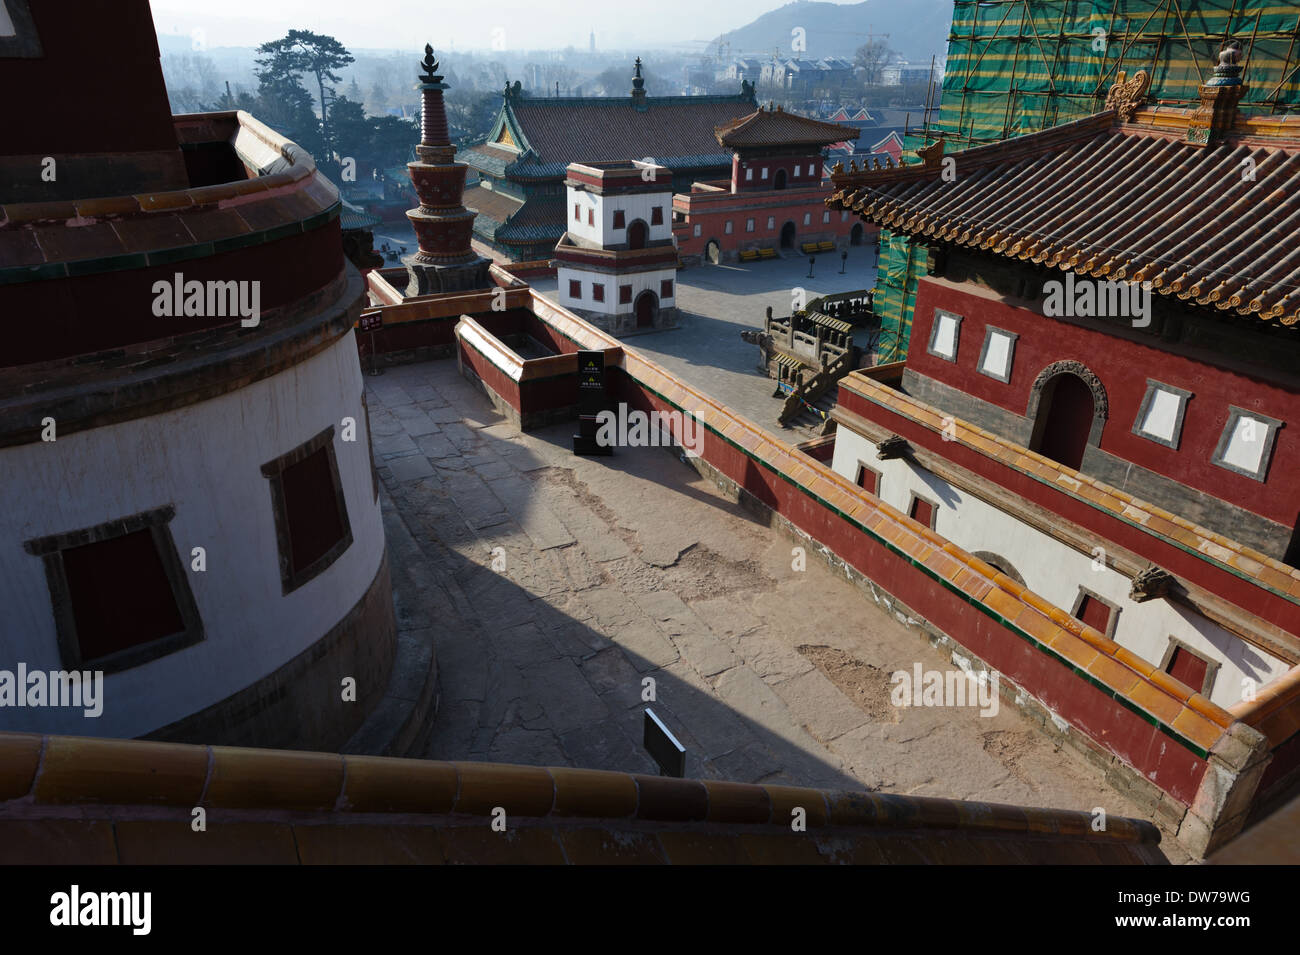 The Puning Temple complex. Chengde, Hebei Province, China. - Stock Image